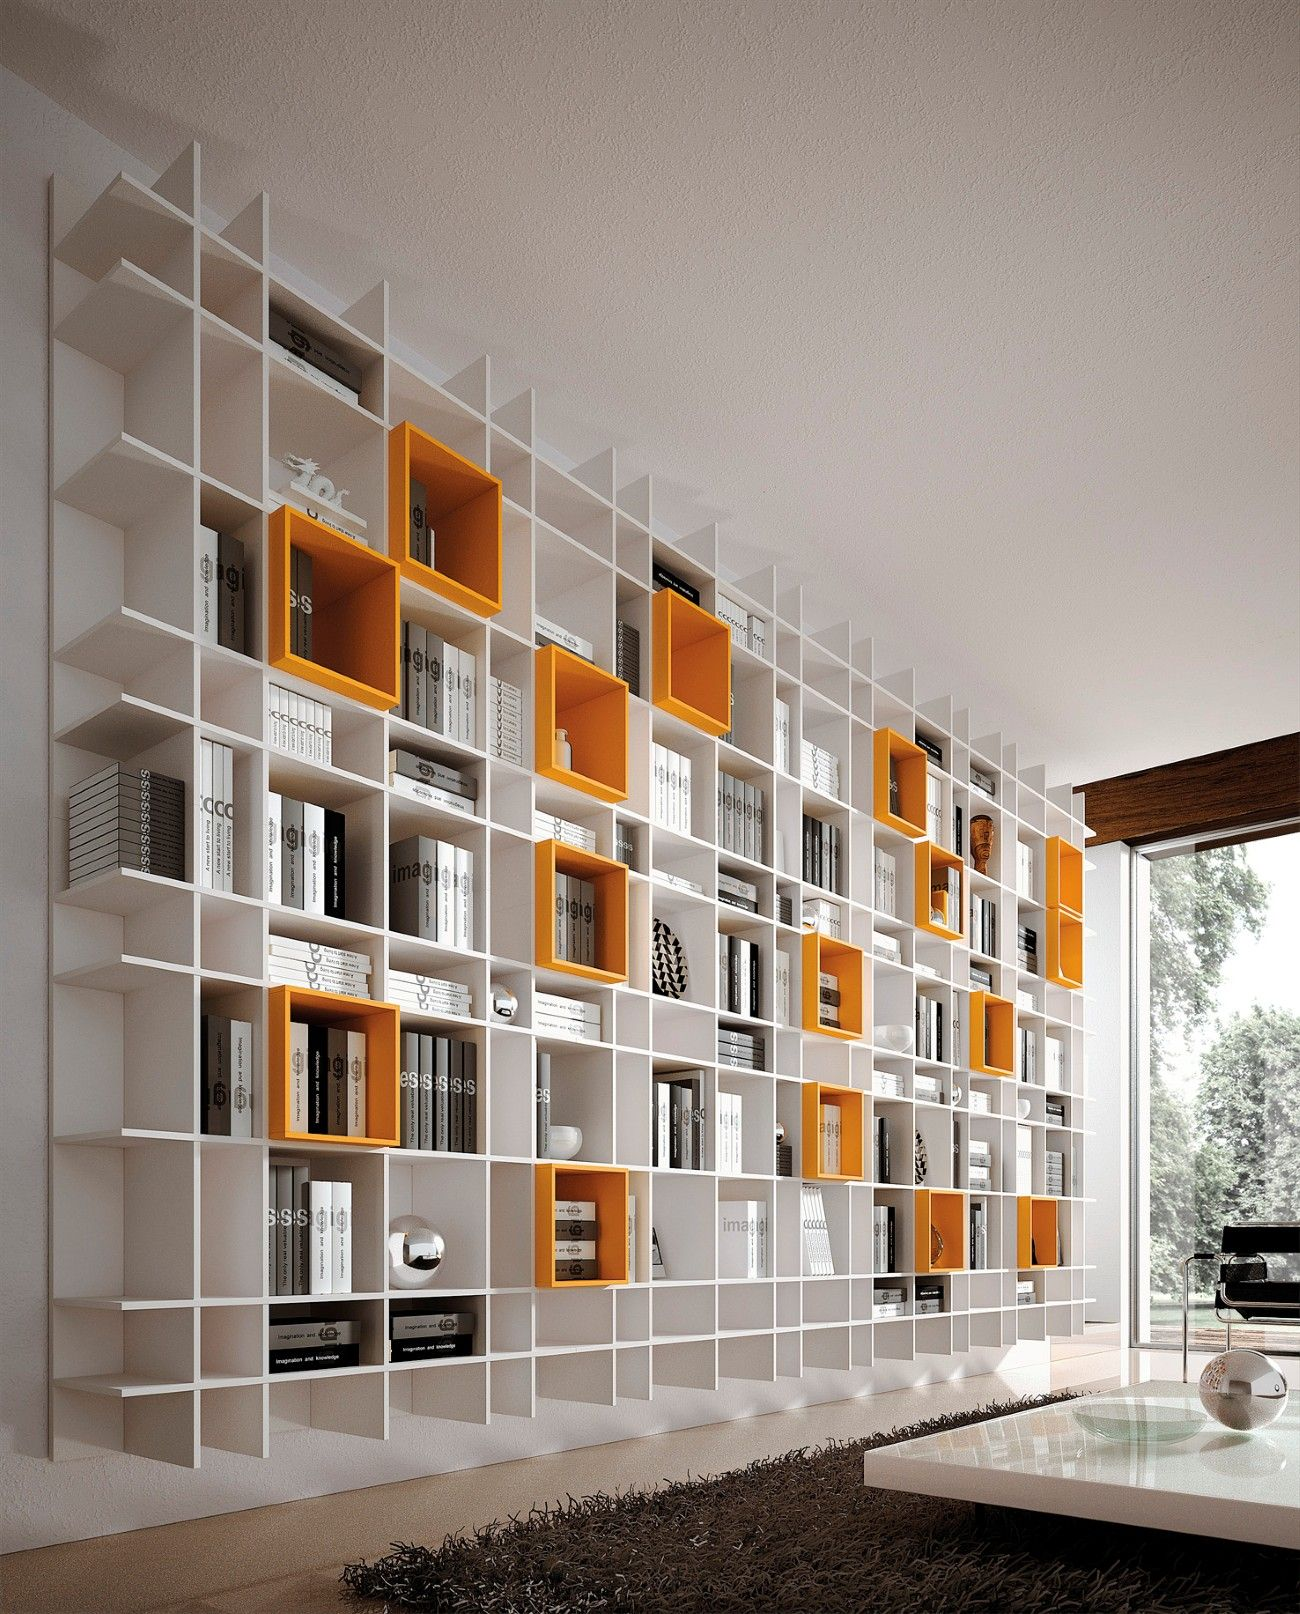 Living Bookcases Collection #Design #Book #Bookcases #Interior #Living #Collection #